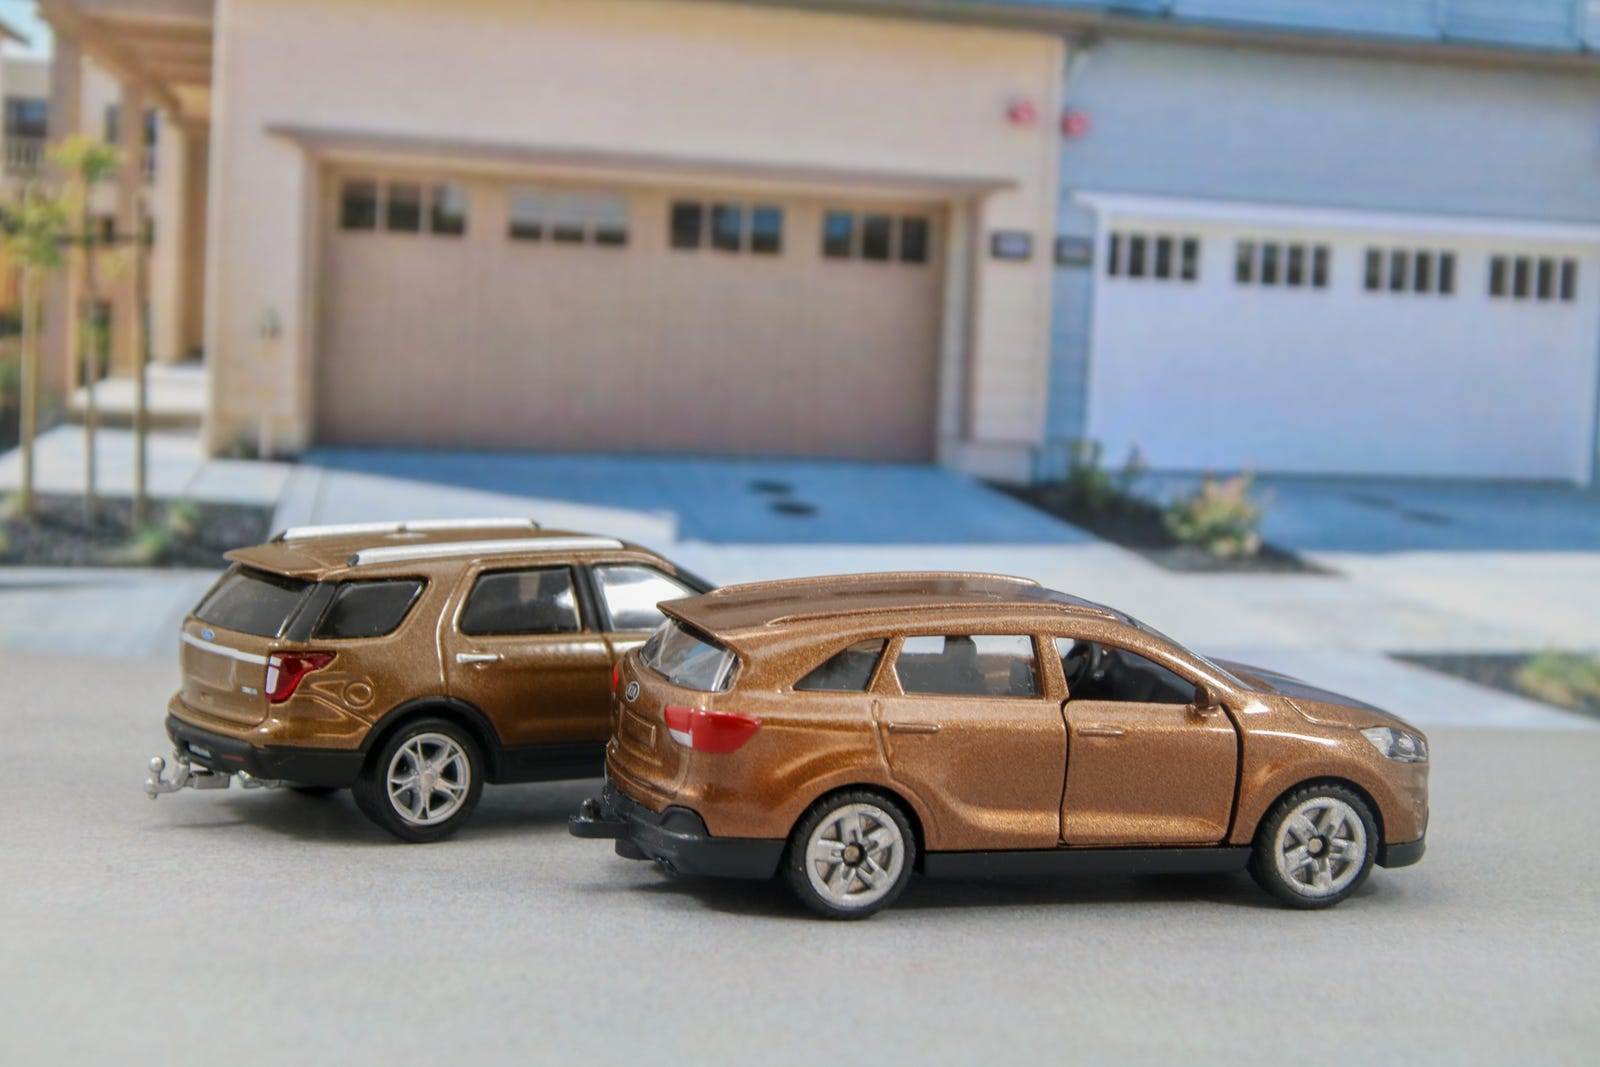 Illustration for article titled Suburban Sundays: A Trio of Brown CUVs